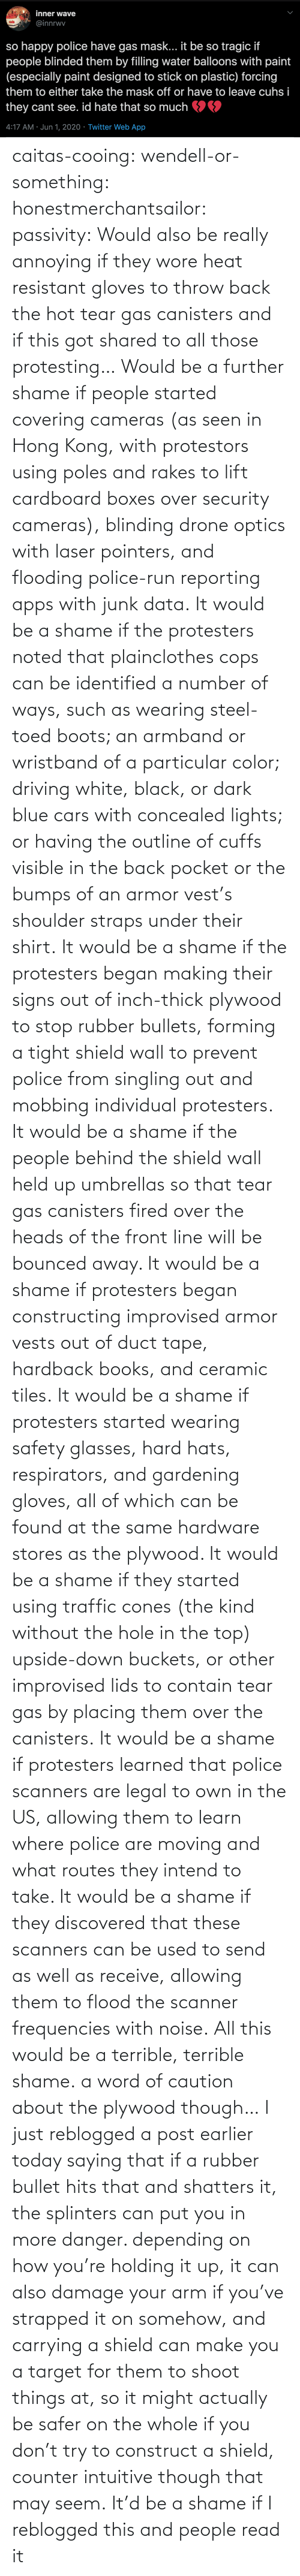 Watch: caitas-cooing:  wendell-or-something: honestmerchantsailor:  passivity: Would also be really annoying if they wore heat resistant gloves to throw back the hot tear gas canisters and if this got shared to all those protesting… Would be a further shame if people started covering cameras (as seen in Hong Kong, with protestors using poles and rakes to lift cardboard boxes over security cameras), blinding drone optics with laser pointers, and flooding police-run reporting apps with junk data. It would be a shame if the protesters noted that plainclothes cops can be identified a number of ways, such as wearing steel-toed boots; an armband or wristband of a particular color; driving white, black, or dark blue cars with concealed lights; or having the outline of cuffs visible in the back pocket or the bumps of an armor vest's shoulder straps under their shirt. It would be a shame if the protesters began making their signs out of inch-thick plywood to stop rubber bullets, forming a tight shield wall to prevent police from singling out and mobbing individual protesters. It would be a shame if the people behind the shield wall held up umbrellas so that tear gas canisters fired over the heads of the front line will be bounced away. It would be a shame if protesters began constructing improvised armor vests out of duct tape, hardback books, and ceramic tiles. It would be a shame if protesters started wearing safety glasses, hard hats, respirators, and gardening gloves, all of which can be found at the same hardware stores as the plywood. It would be a shame if they started using traffic cones (the kind without the hole in the top) upside-down buckets, or other improvised lids to contain tear gas by placing them over the canisters. It would be a shame if protesters learned that police scanners are legal to own in the US, allowing them to learn where police are moving and what routes they intend to take. It would be a shame if they discovered that these scanners can be used to send as well as receive, allowing them to flood the scanner frequencies with noise. All this would be a terrible, terrible shame.    a word of caution about the plywood though… I just reblogged a post earlier today saying that if a rubber bullet hits that and shatters it, the splinters can put you in more danger. depending on how you're holding it up, it can also damage your arm if you've strapped it on somehow, and carrying a shield can make you a target for them to shoot things at, so it might actually be safer on the whole if you don't try to construct a shield, counter intuitive though that may seem.    It'd be a shame if I reblogged this and people read it